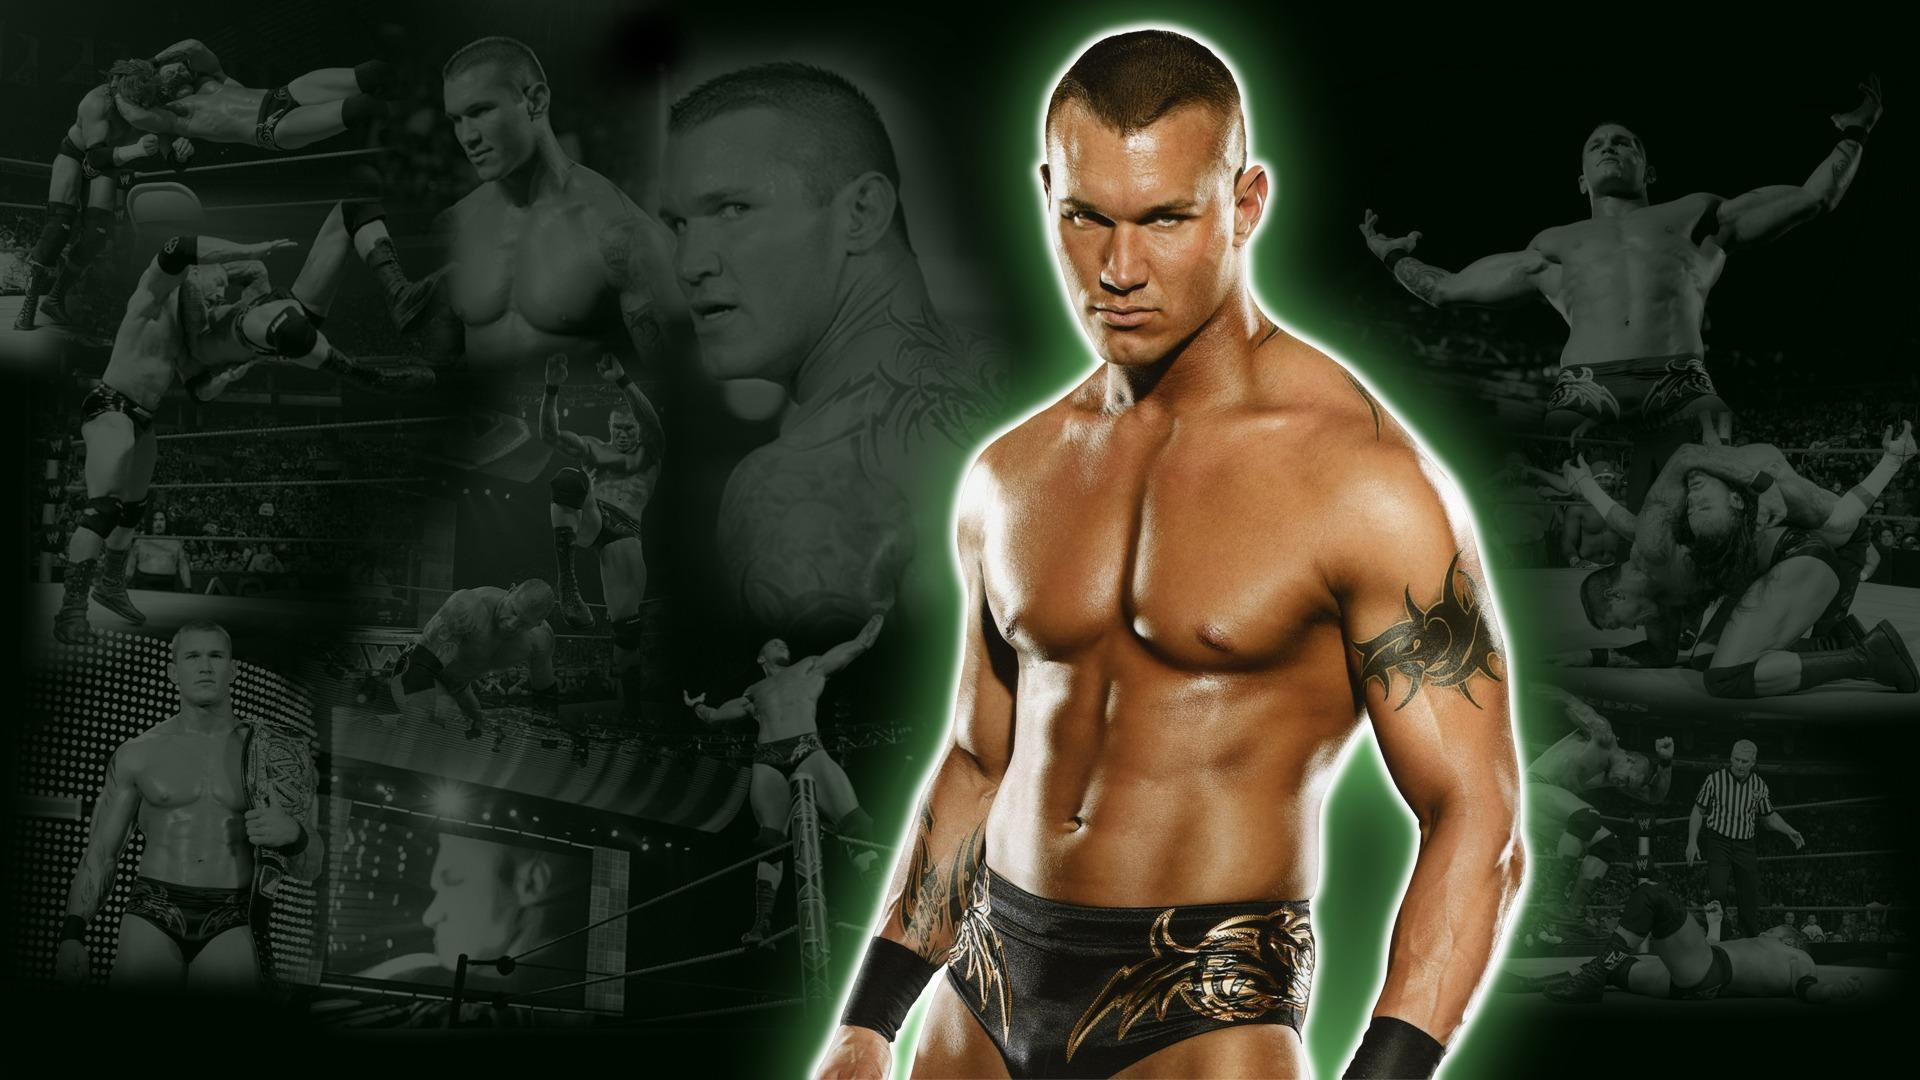 Randy Orton WWE Fighter